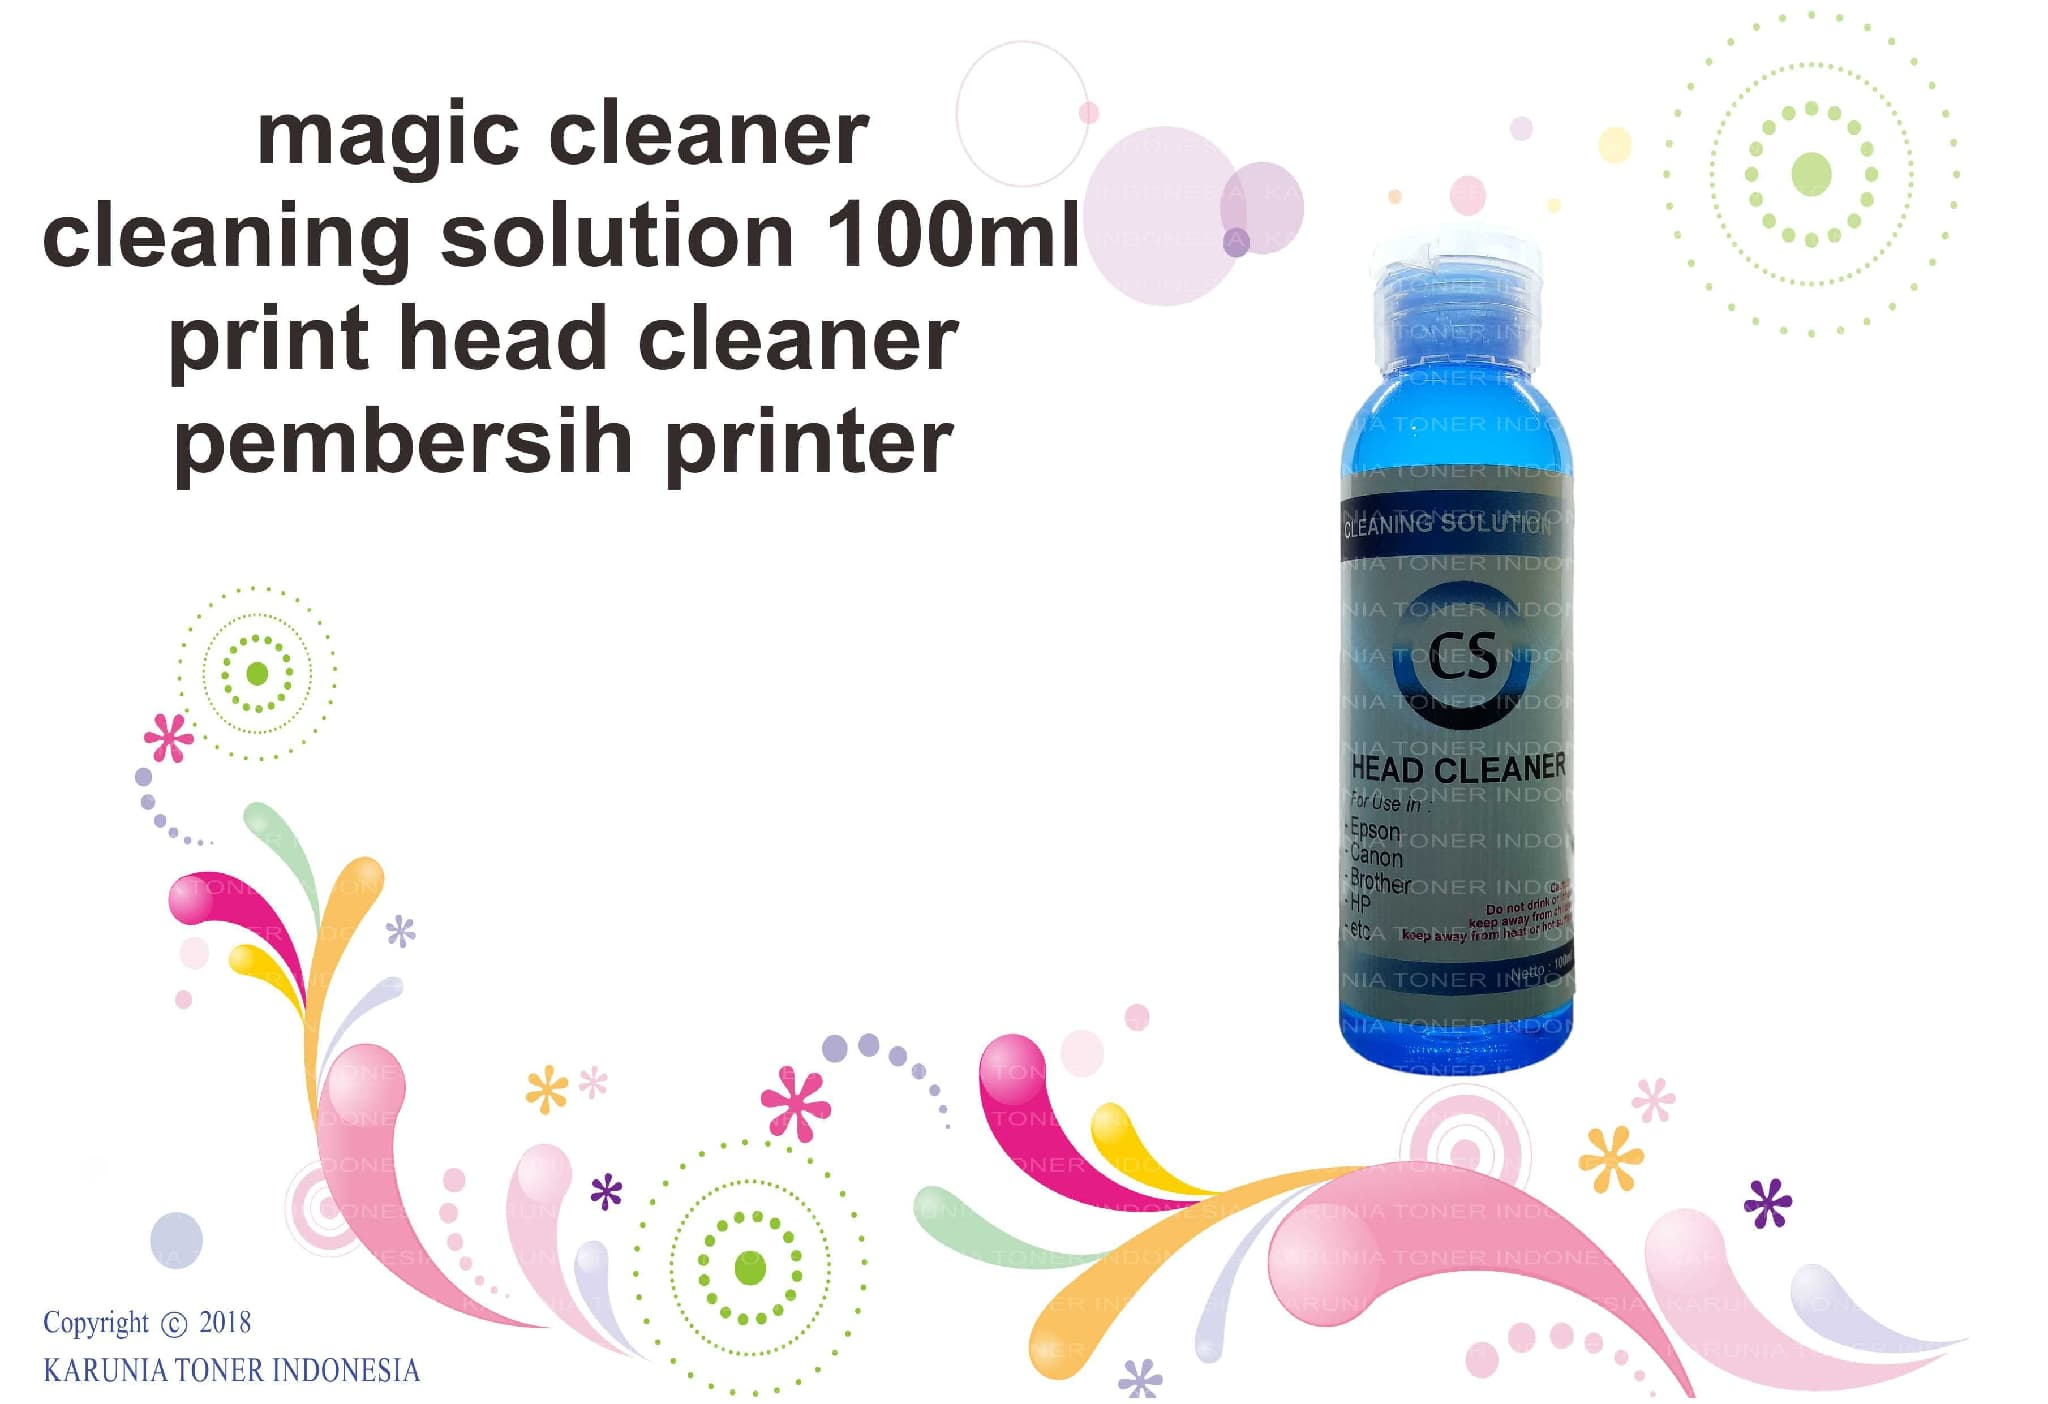 Jual cleaner cleaning solution 100ml / print head cleaner